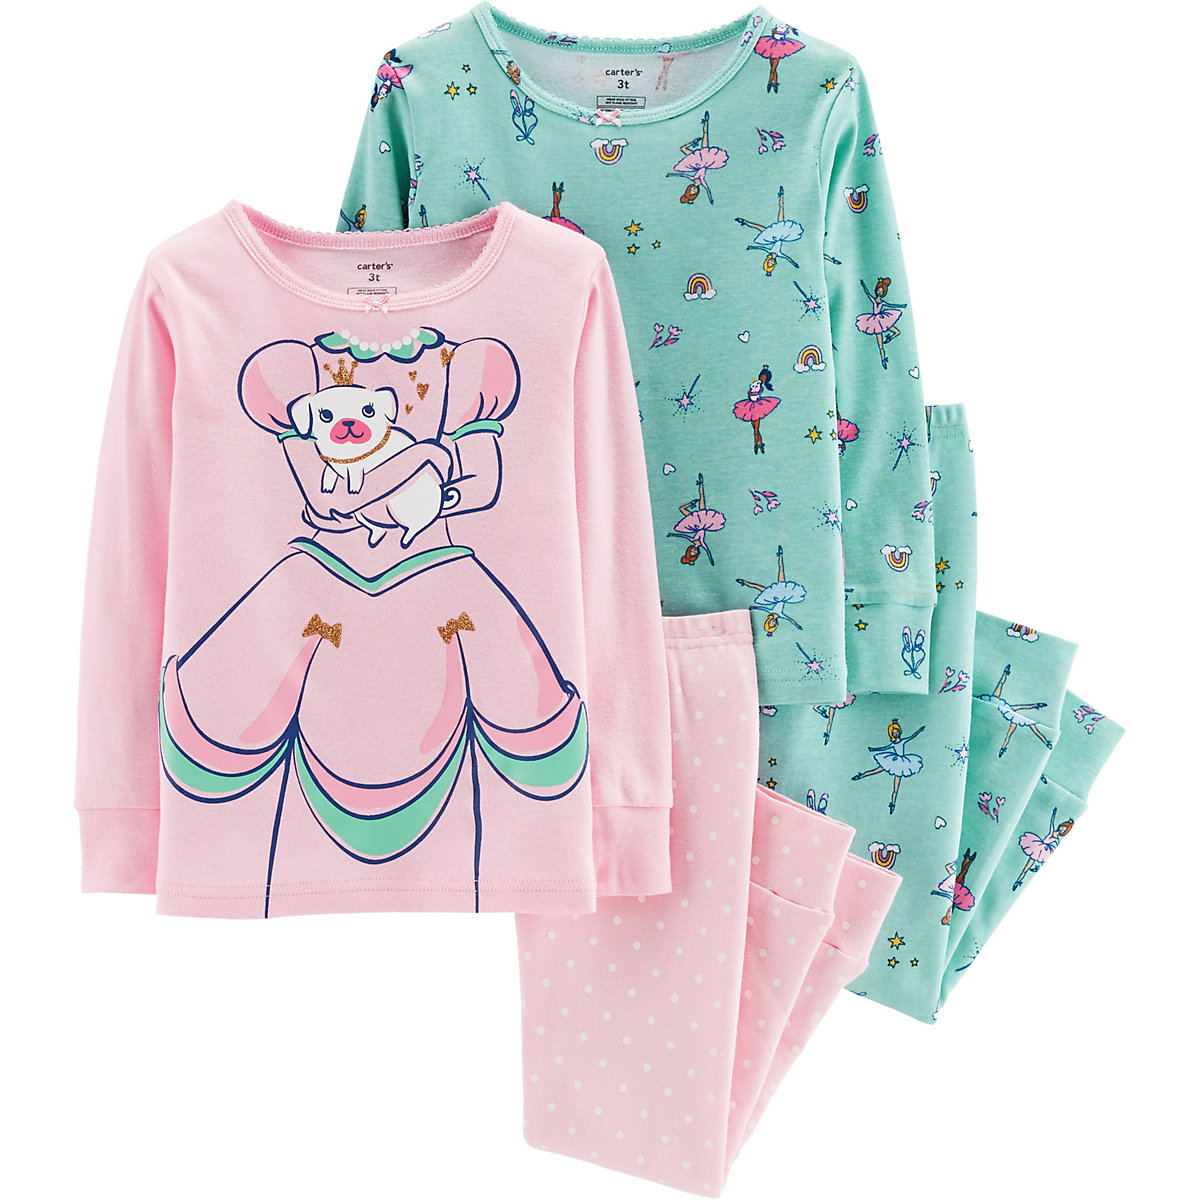 Carter's Pajama Sets 10267074 pajamas for girls baby clothes for sleeping girl new year family christmas pajamas costumes infant toddler baby girls christmas dress outfits girl party dress baby rompers